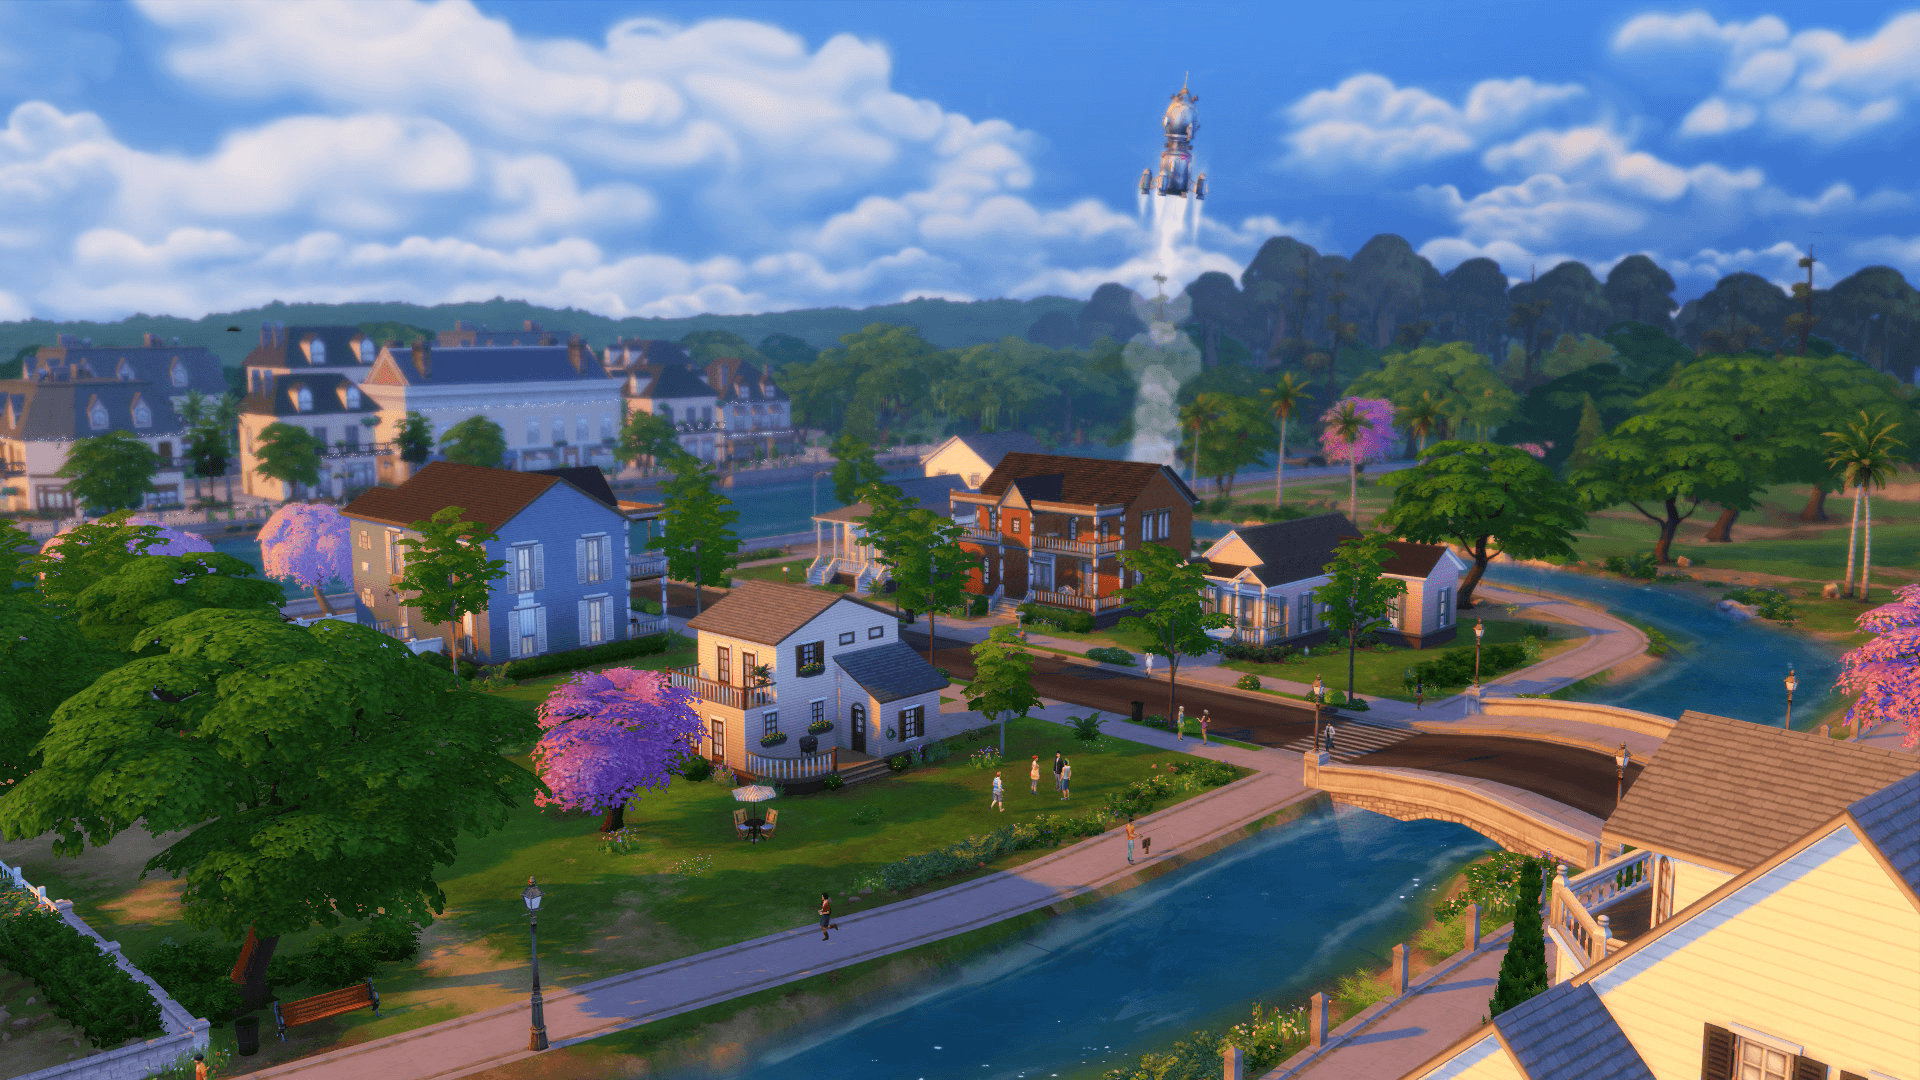 sims 4 backgrounds - photo #24